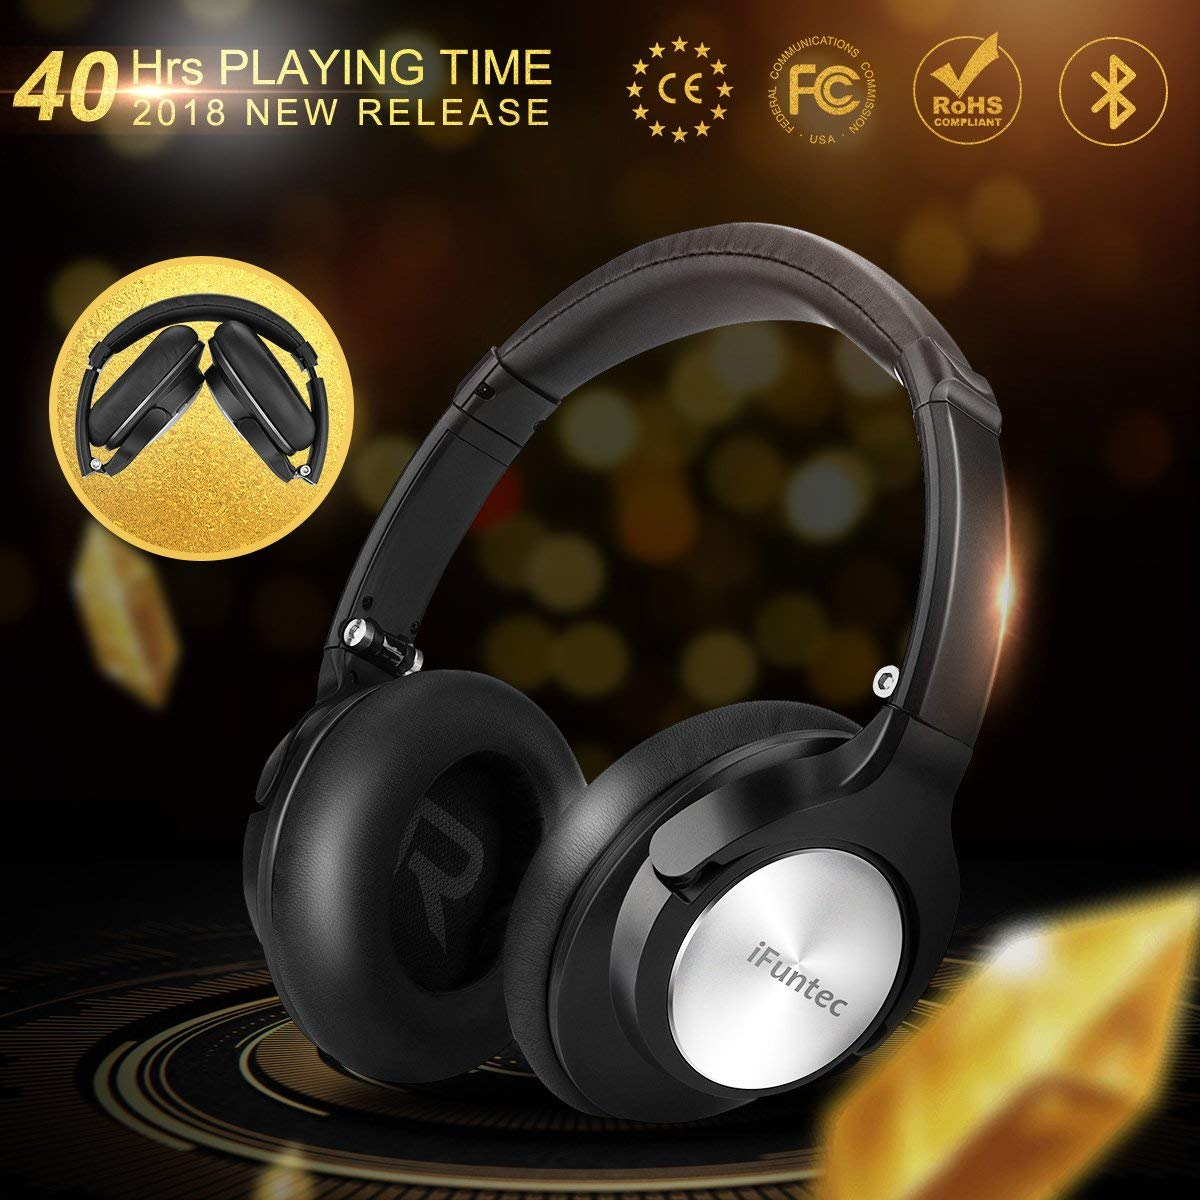 Bluetooth Headphones Over Ear, iFuntec Noise Cancelling Bluetooth Headphones Dual Modes Wired Headphones Headset CSR Deep Bass Headphone,≥40H Playtime for Travel Work Computer Cellphone Black